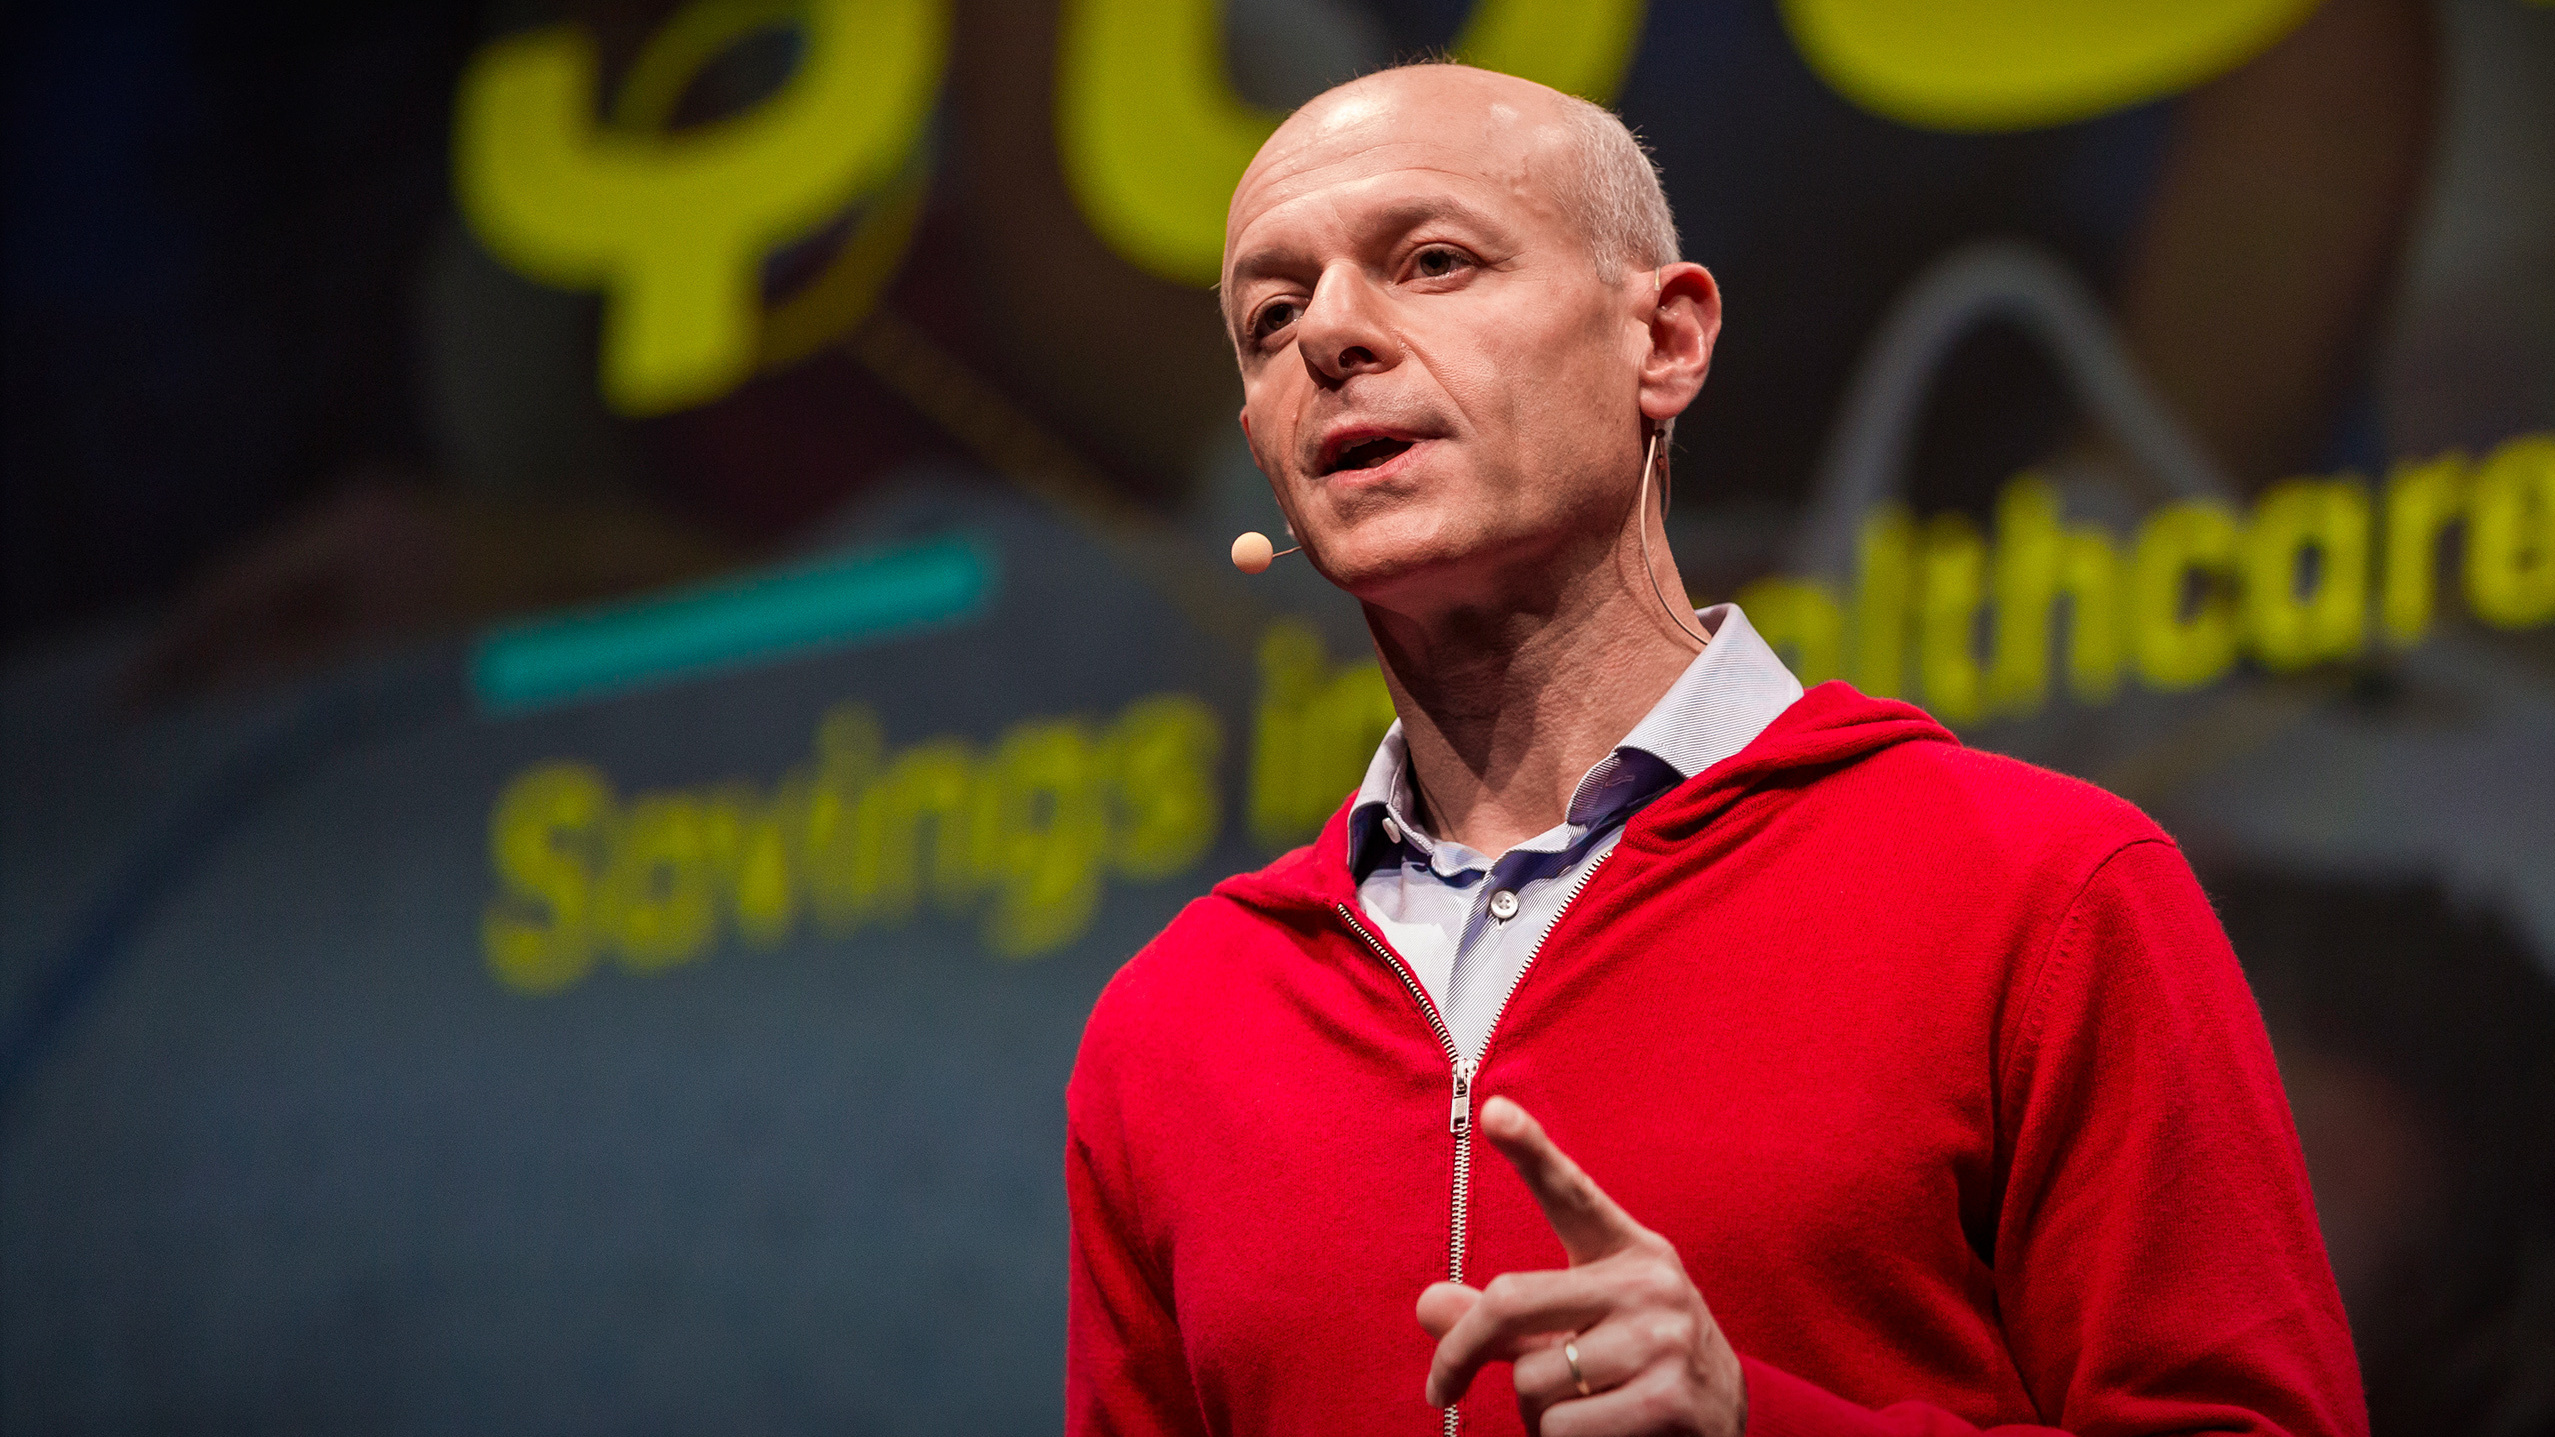 Image for Marco Annunziata: What Will Human-Machine Collaboration Mean For Our Jobs? Article